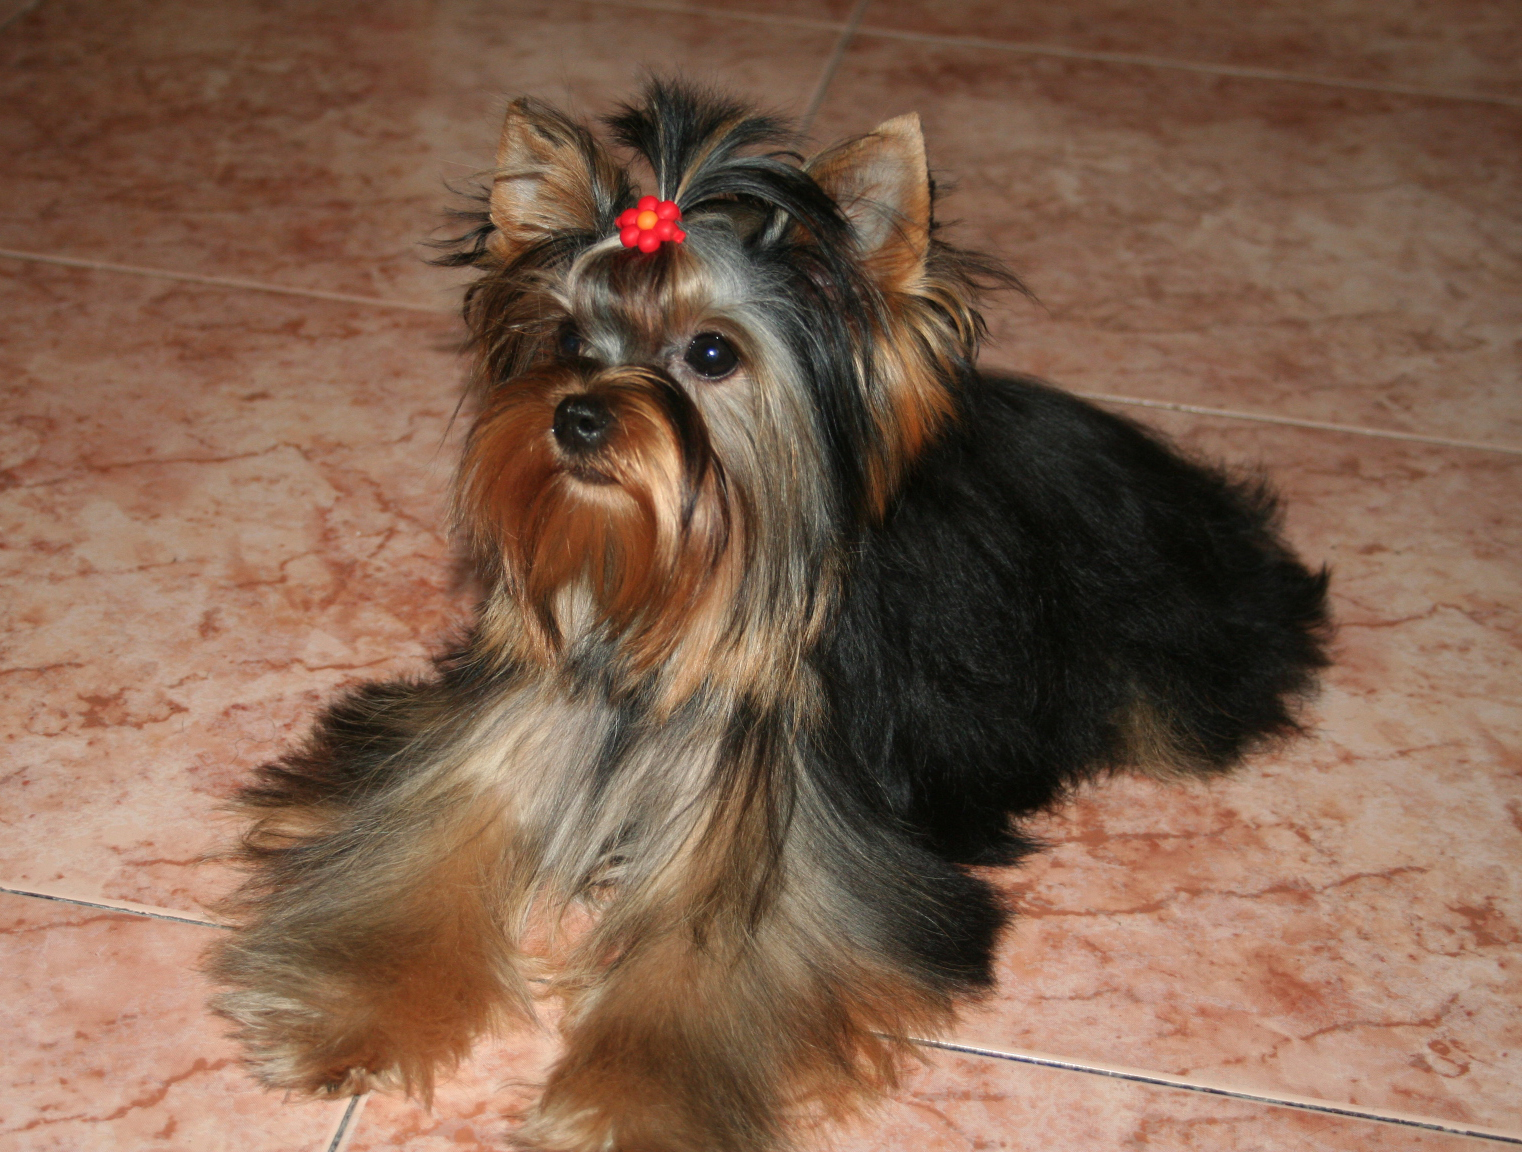 Yorkshire Terrier Dog Picture #4167 | Pet Gallery | PetPeoplesPlace ...